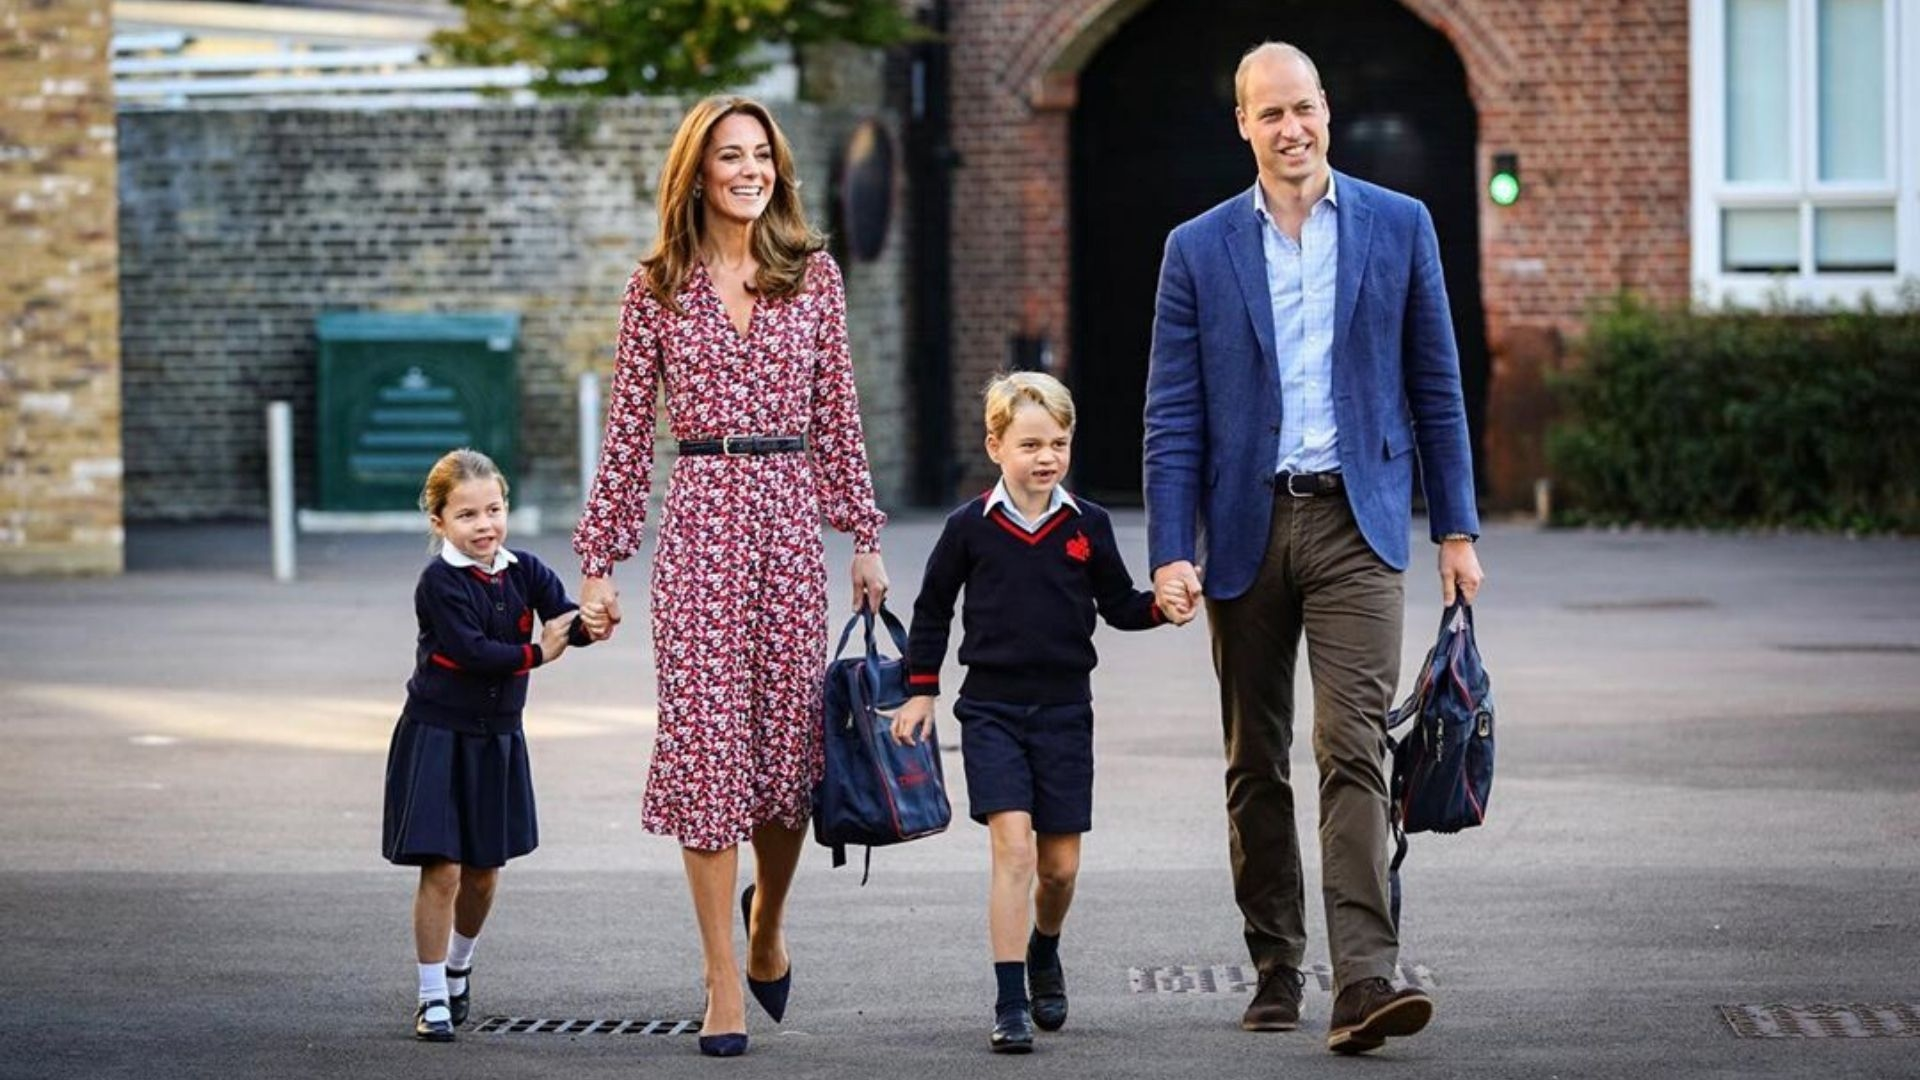 Here's A Sneak Peak At The Cambridge's 2019 Christmas Card